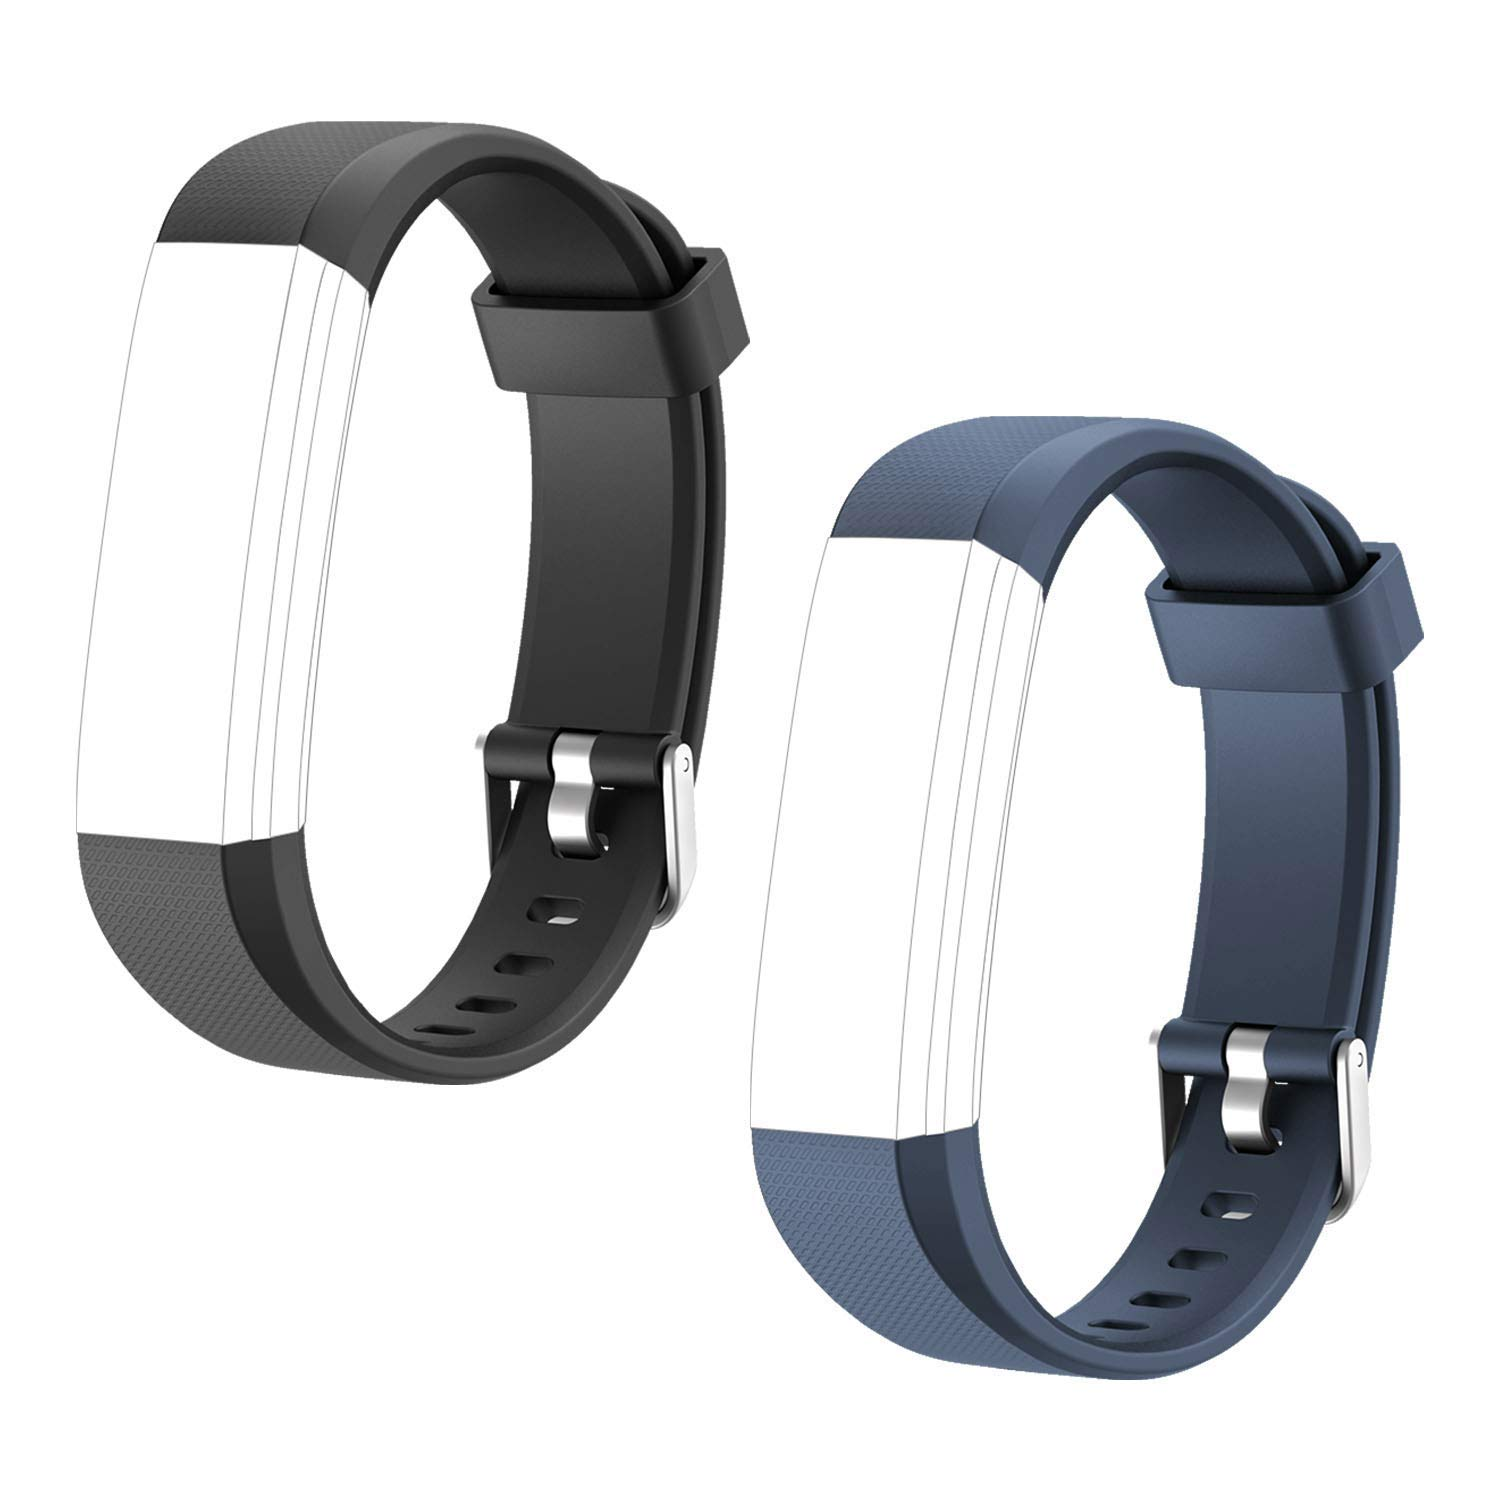 Letsfit Replacement Bands for Fitness Tracker ID115U HR, ID115U HR Accessory Bands, Adjustable Replacement Straps, 2 Pack (Black, Blue)